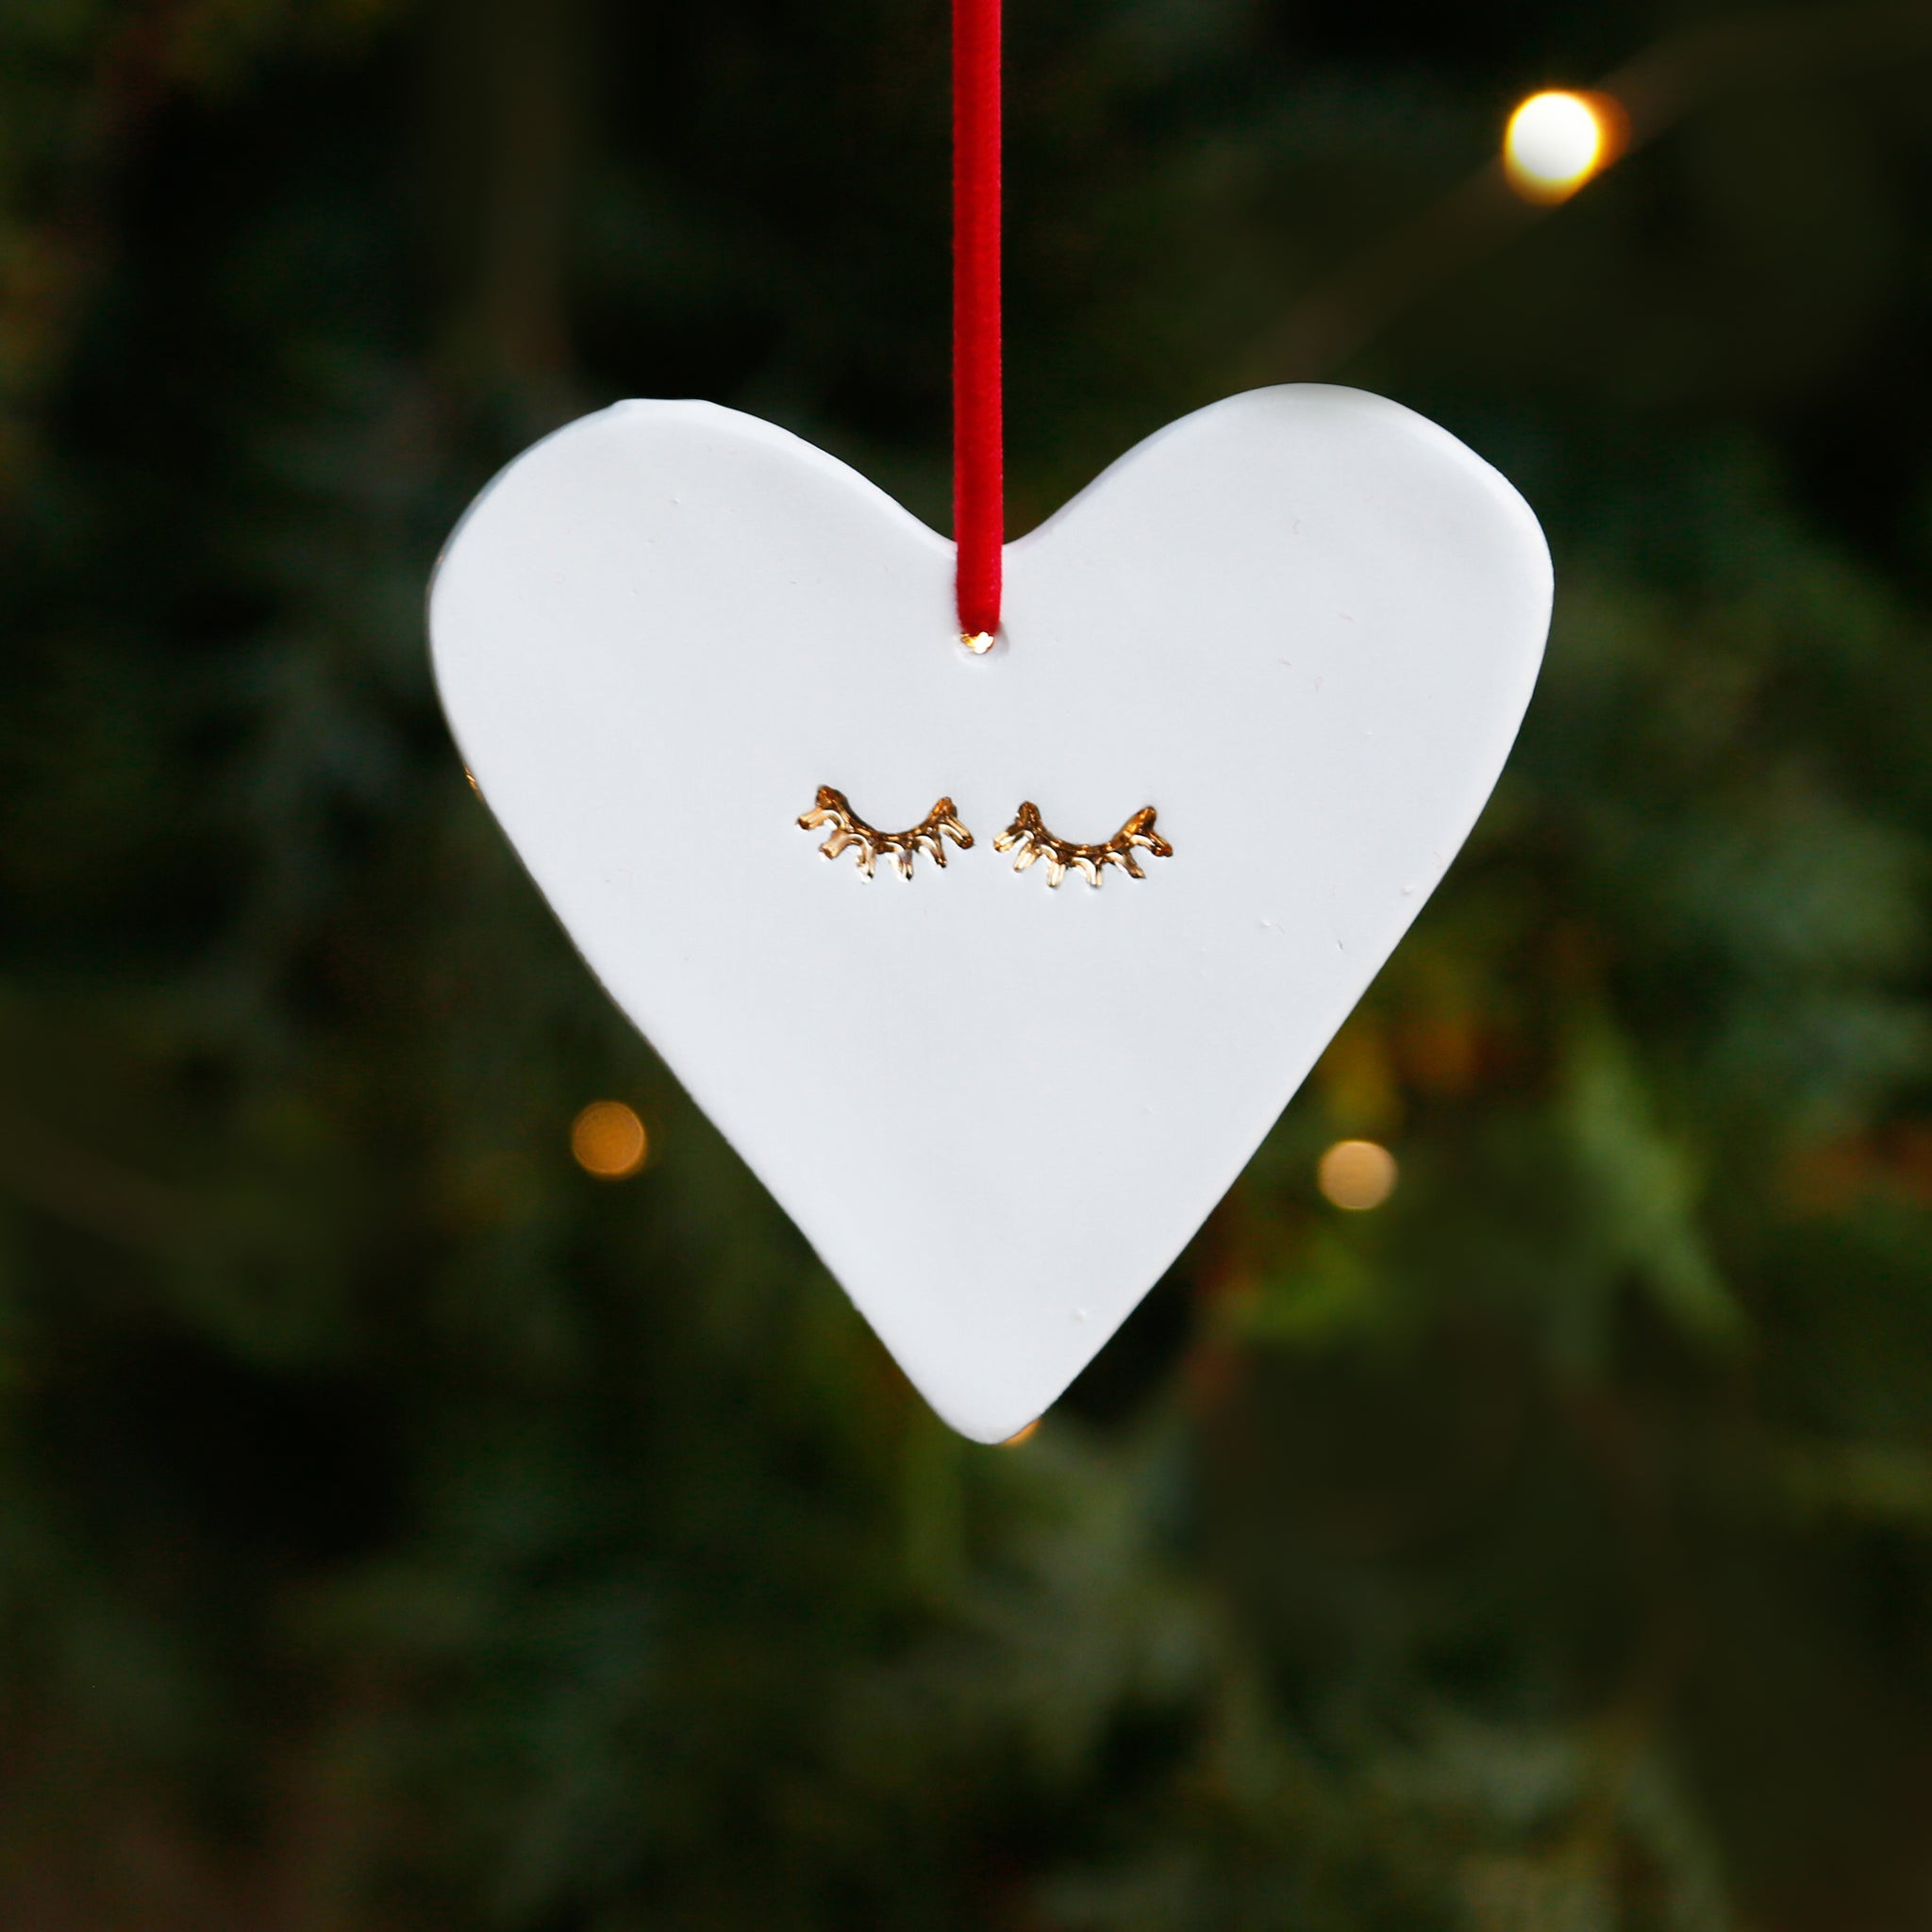 Stylish Heart Ornament with 22c Gold Lustre Eyelashes